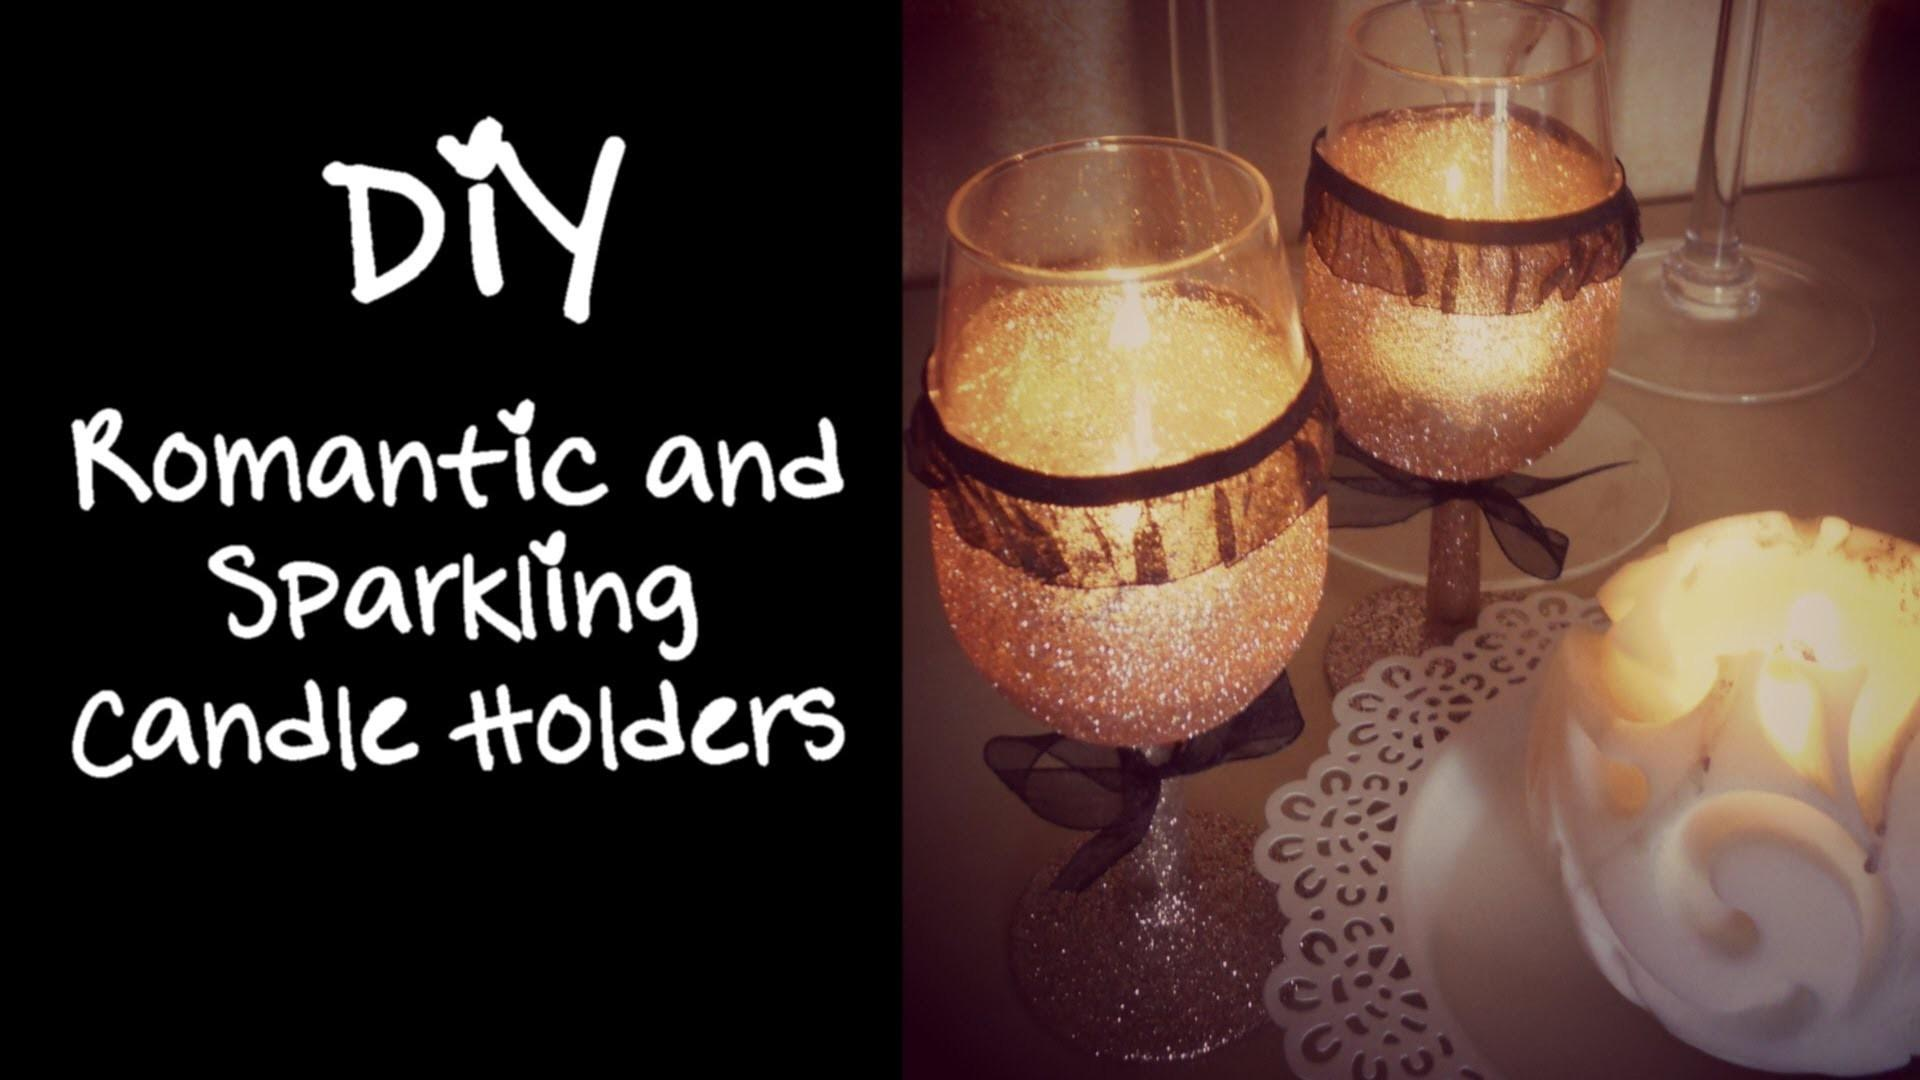 Diy Romantic Sparkling Candle Holders Home Decor